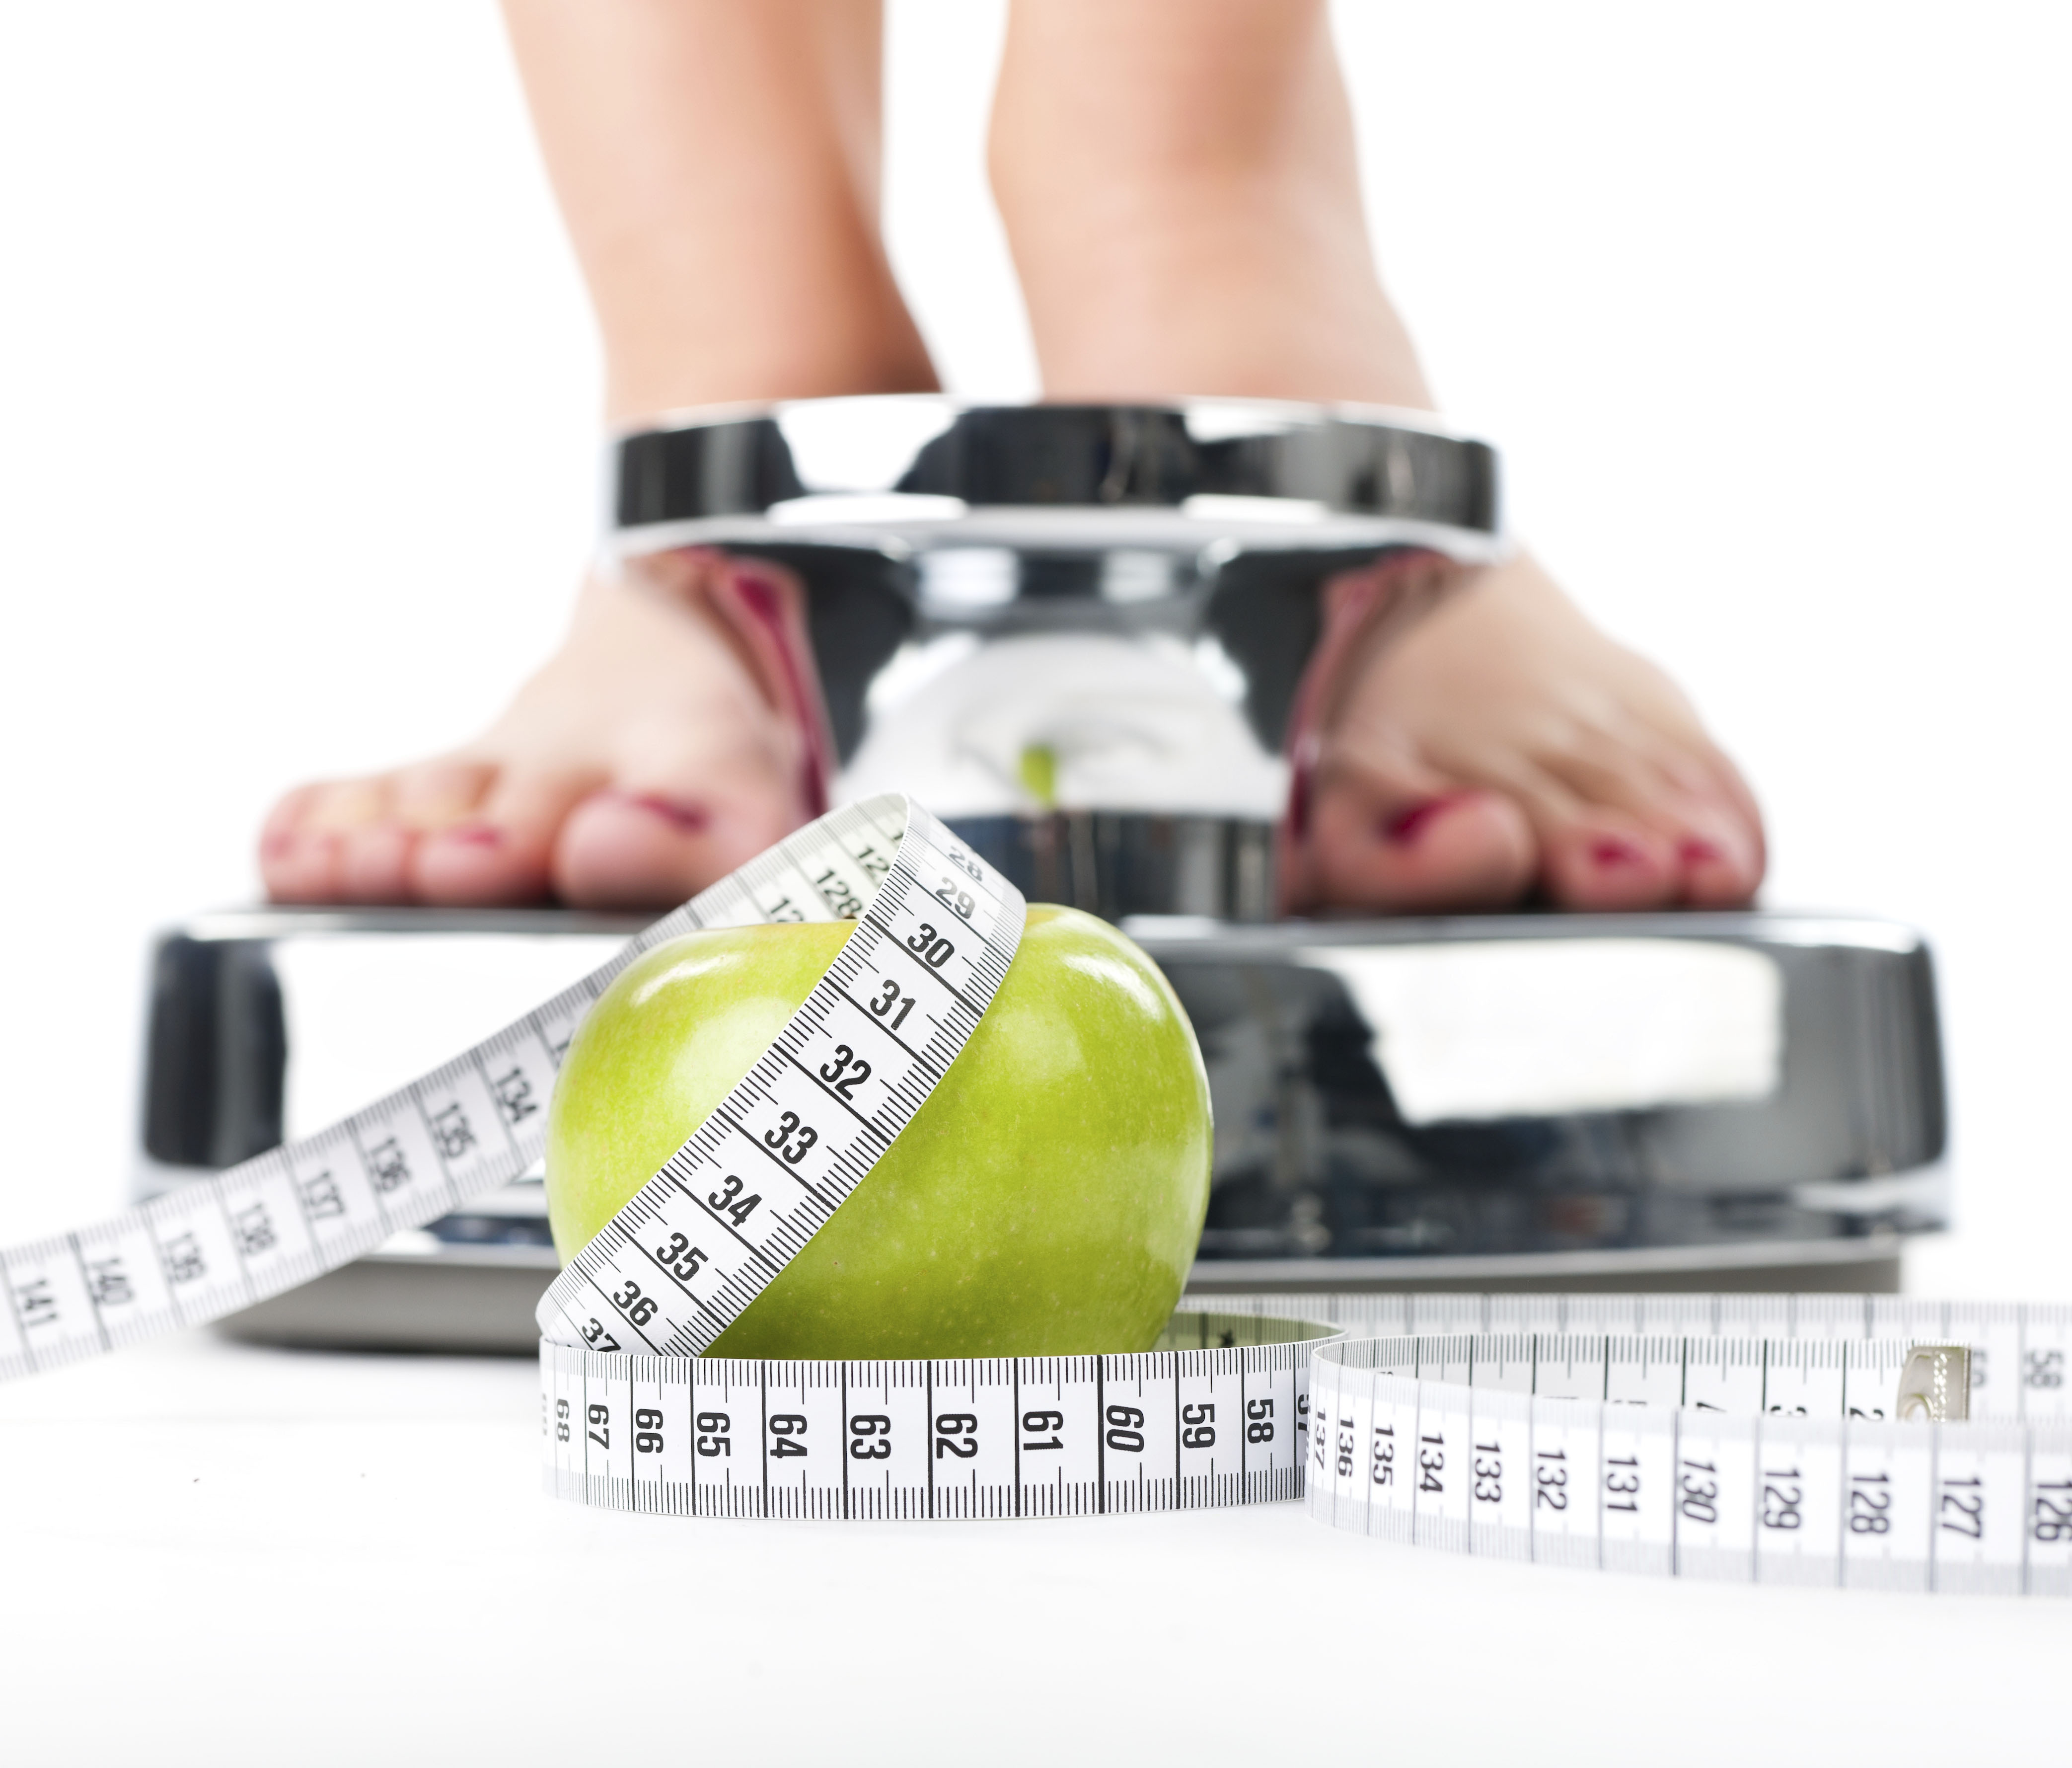 Finding Your Healthy BMI